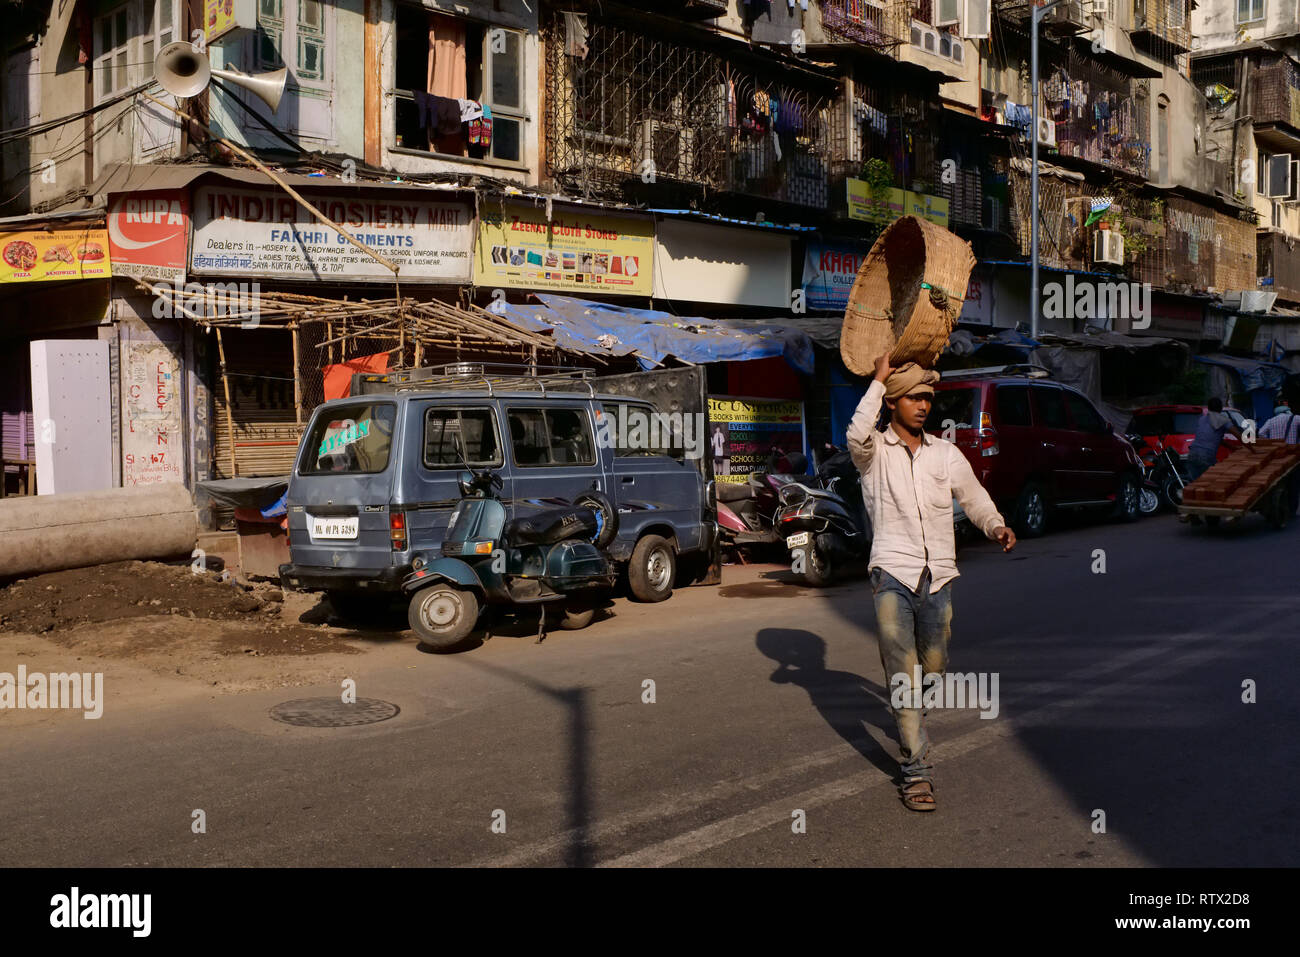 A porter with his empty basket raised over his head for more comfortable carrying, in Muslim-dominated Pydhonie area, Mumbai, India - Stock Image